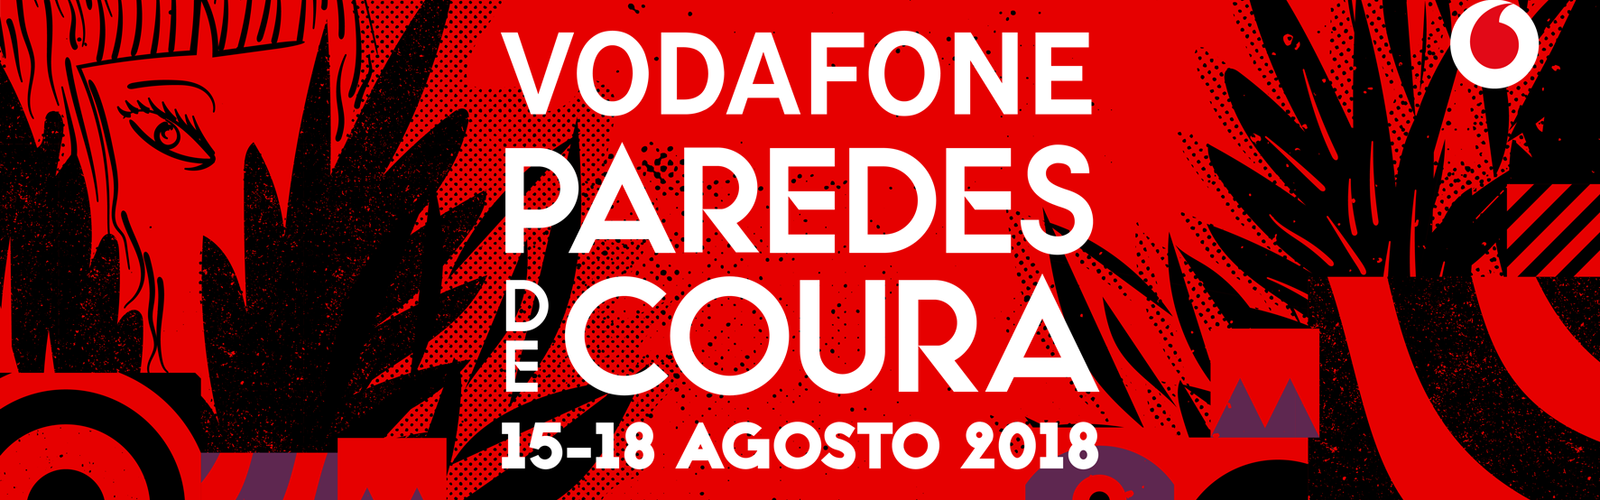 "Vodafone Paredes de Coura ""Comes to the Village"" in 2018"